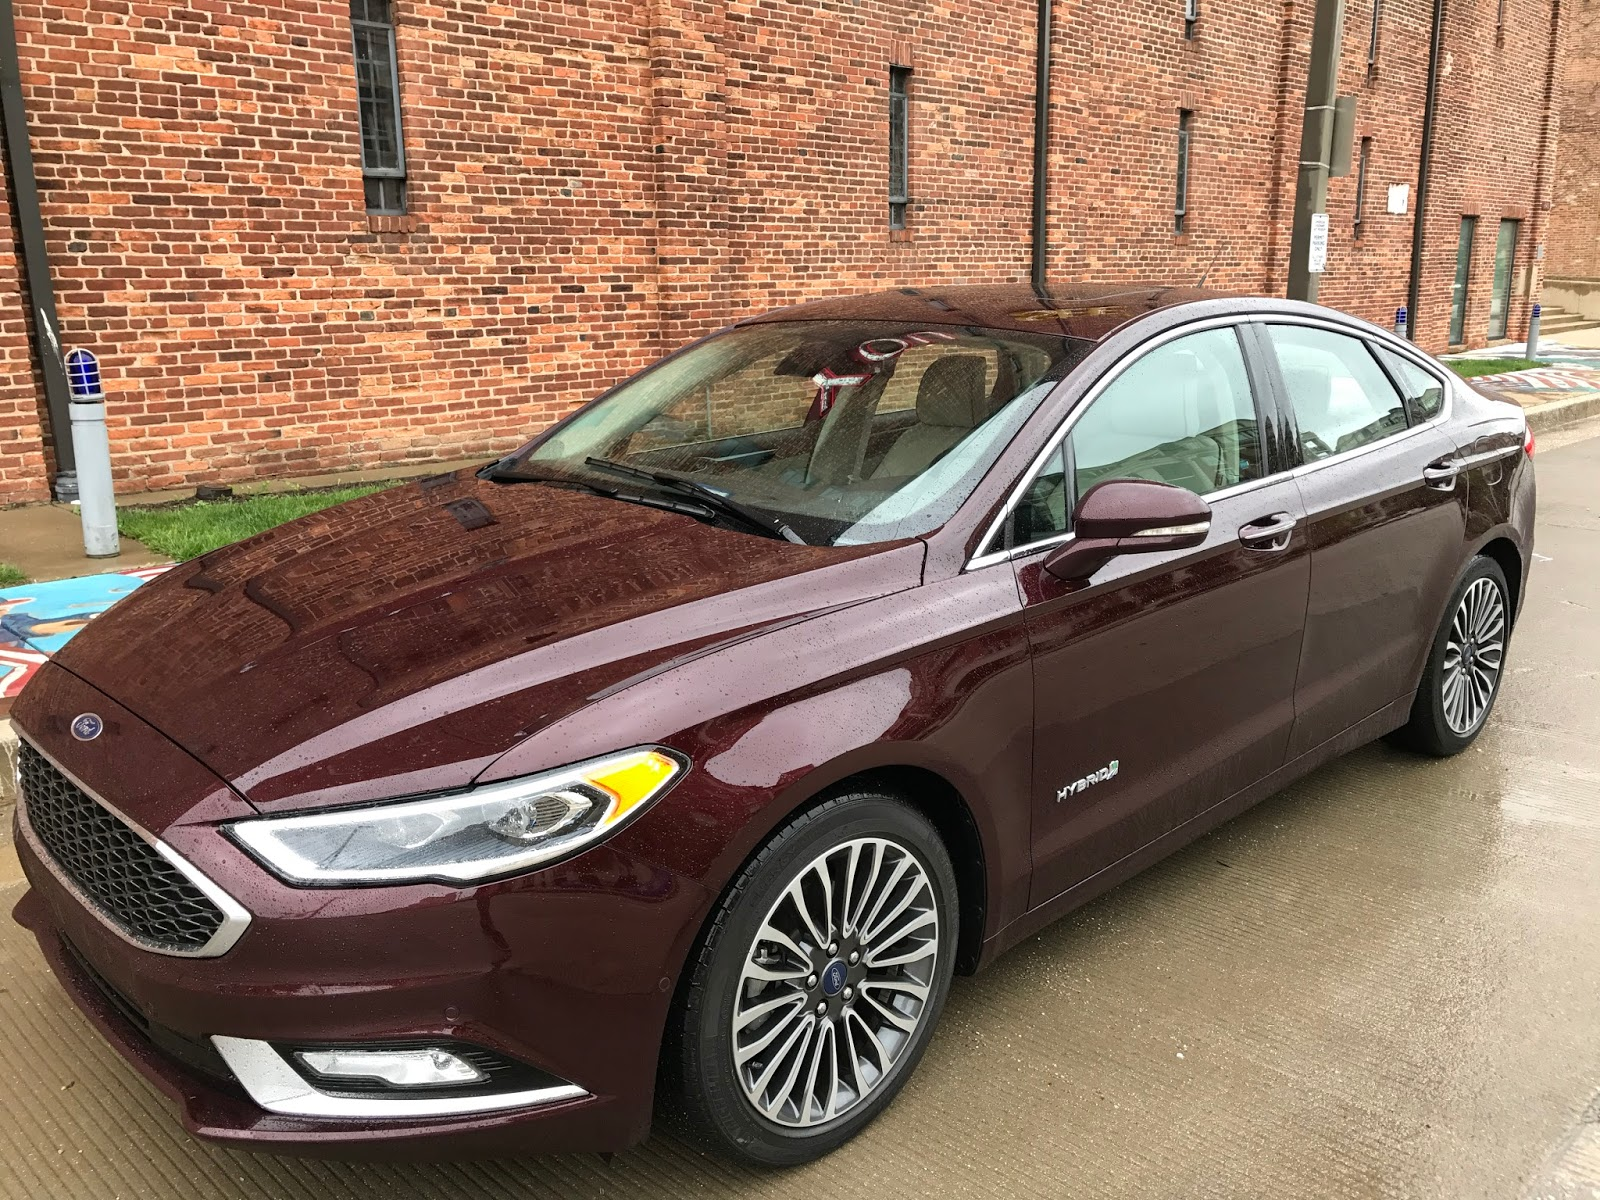 was dc to seat weeks girl platinum so hybrid got drivers the excited i when new review ago fusion yea img in a pretty brand around few ford cruise